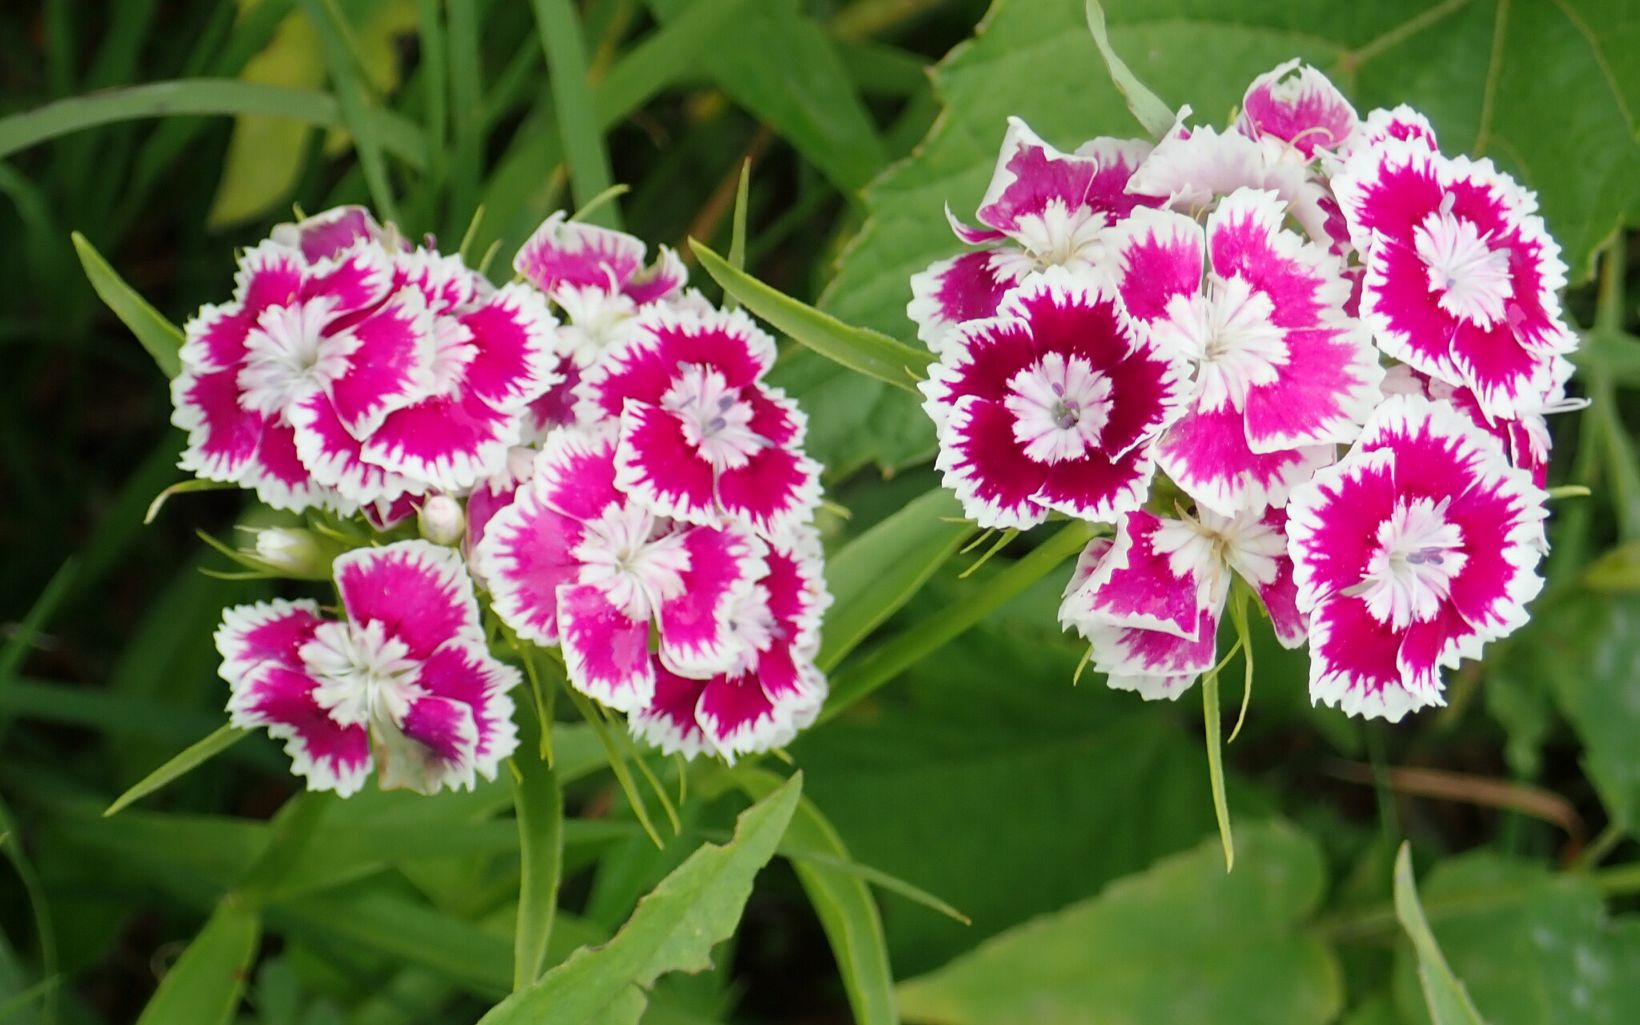 Two clumps of flowers with a hot pink and white ruffled pattern on the petals.